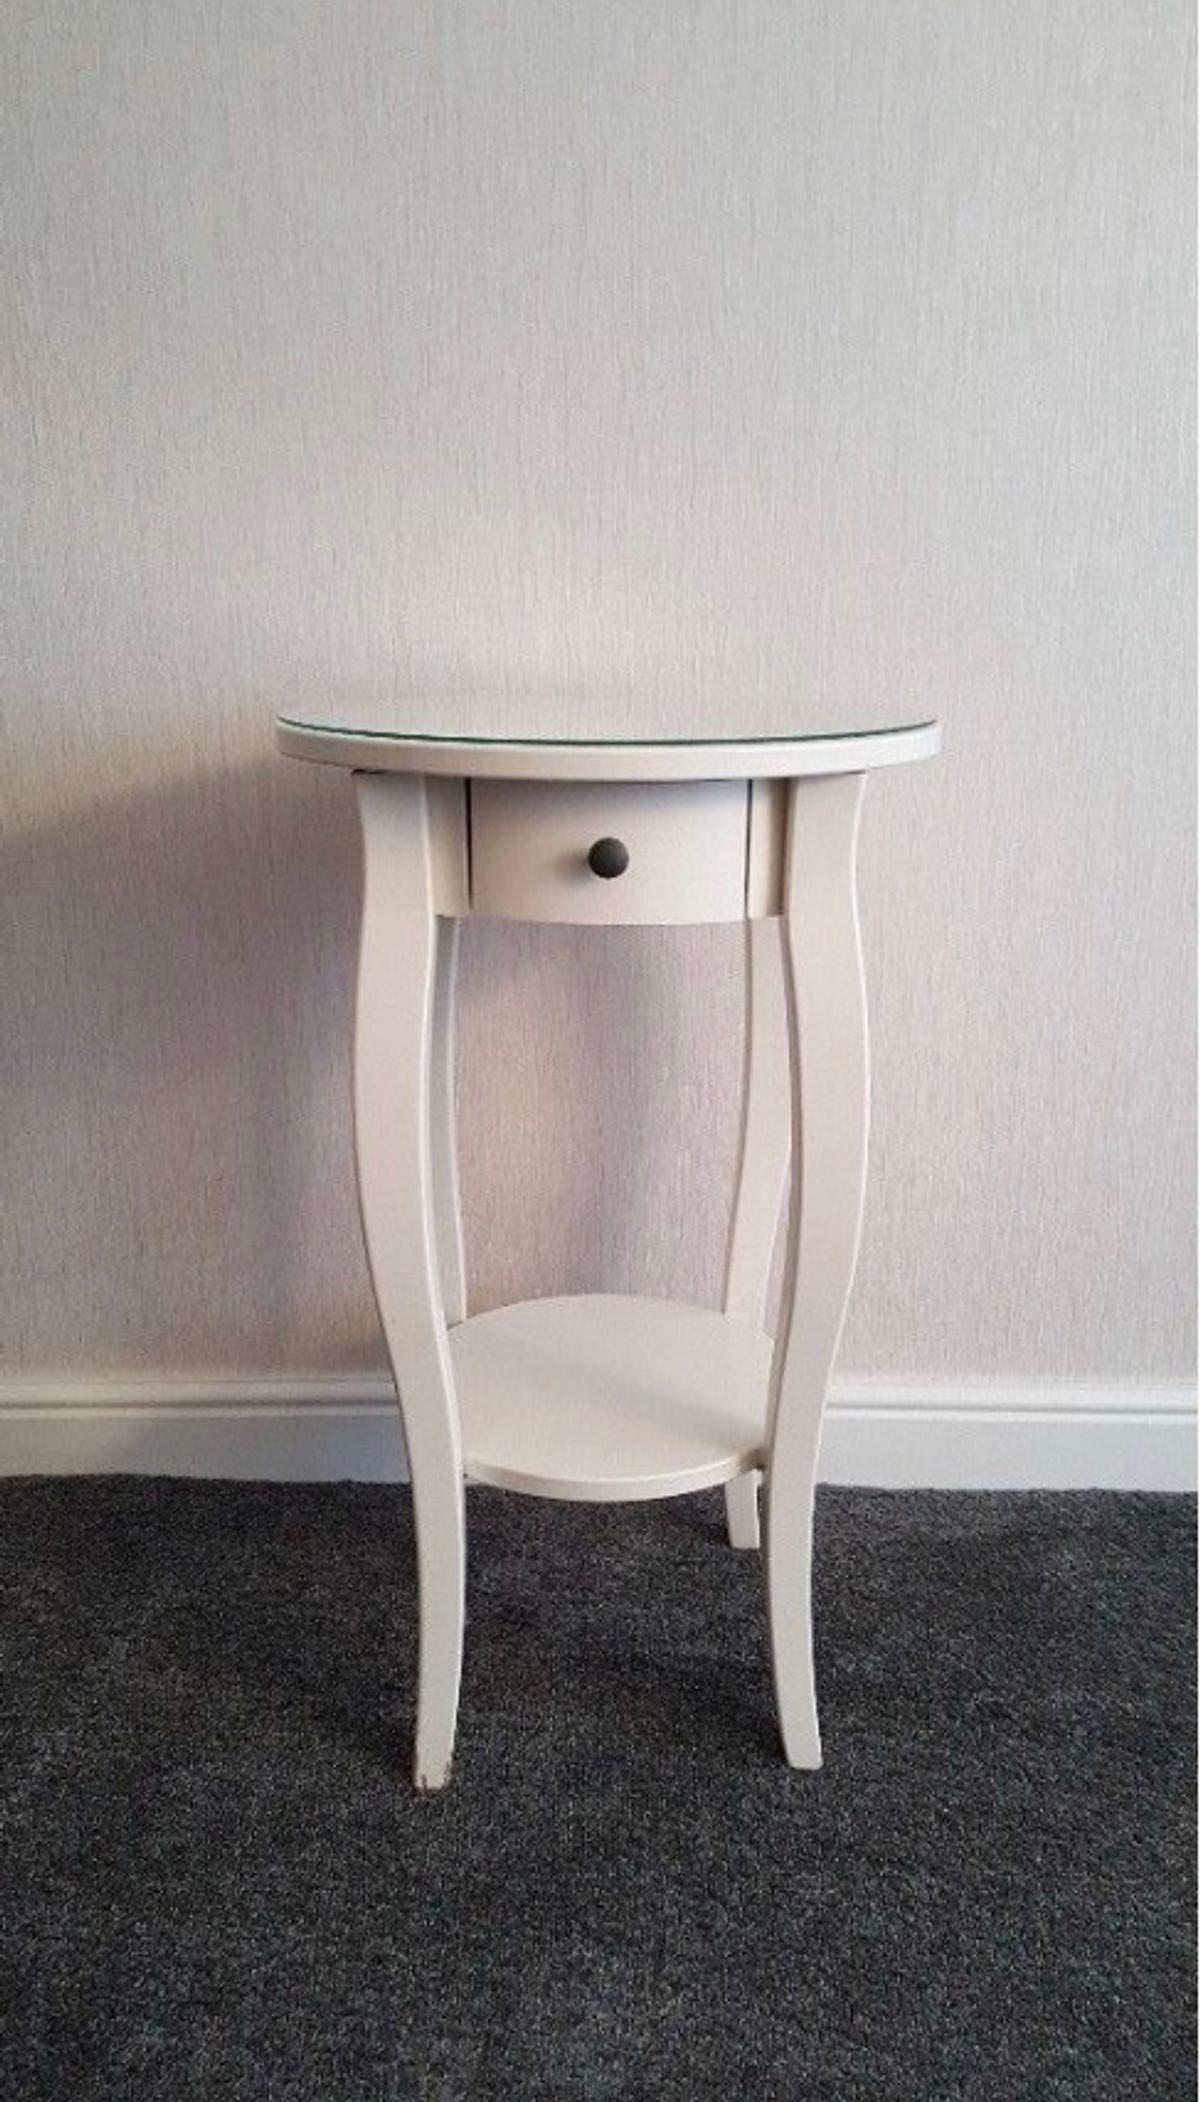 Bedside Round Table.Hemnes Round Bedside Table